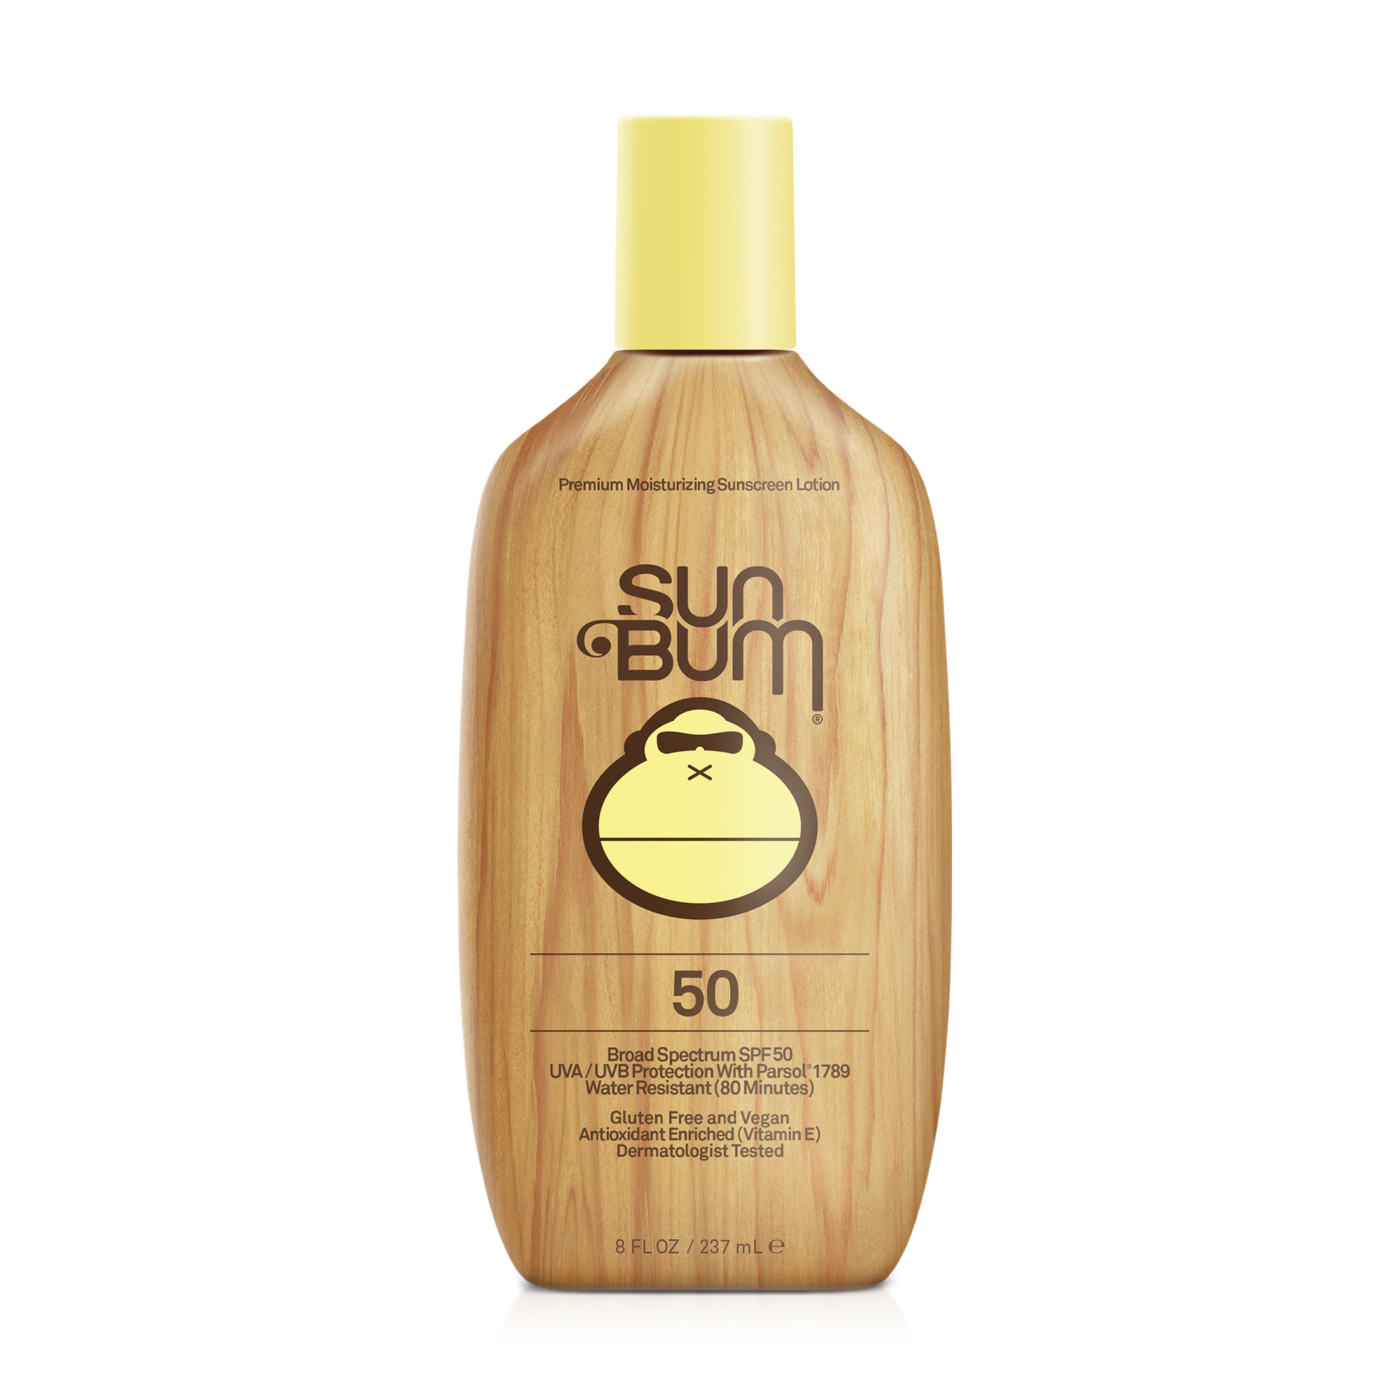 Sun Bum SPF 50 Lotion - 88 Gear